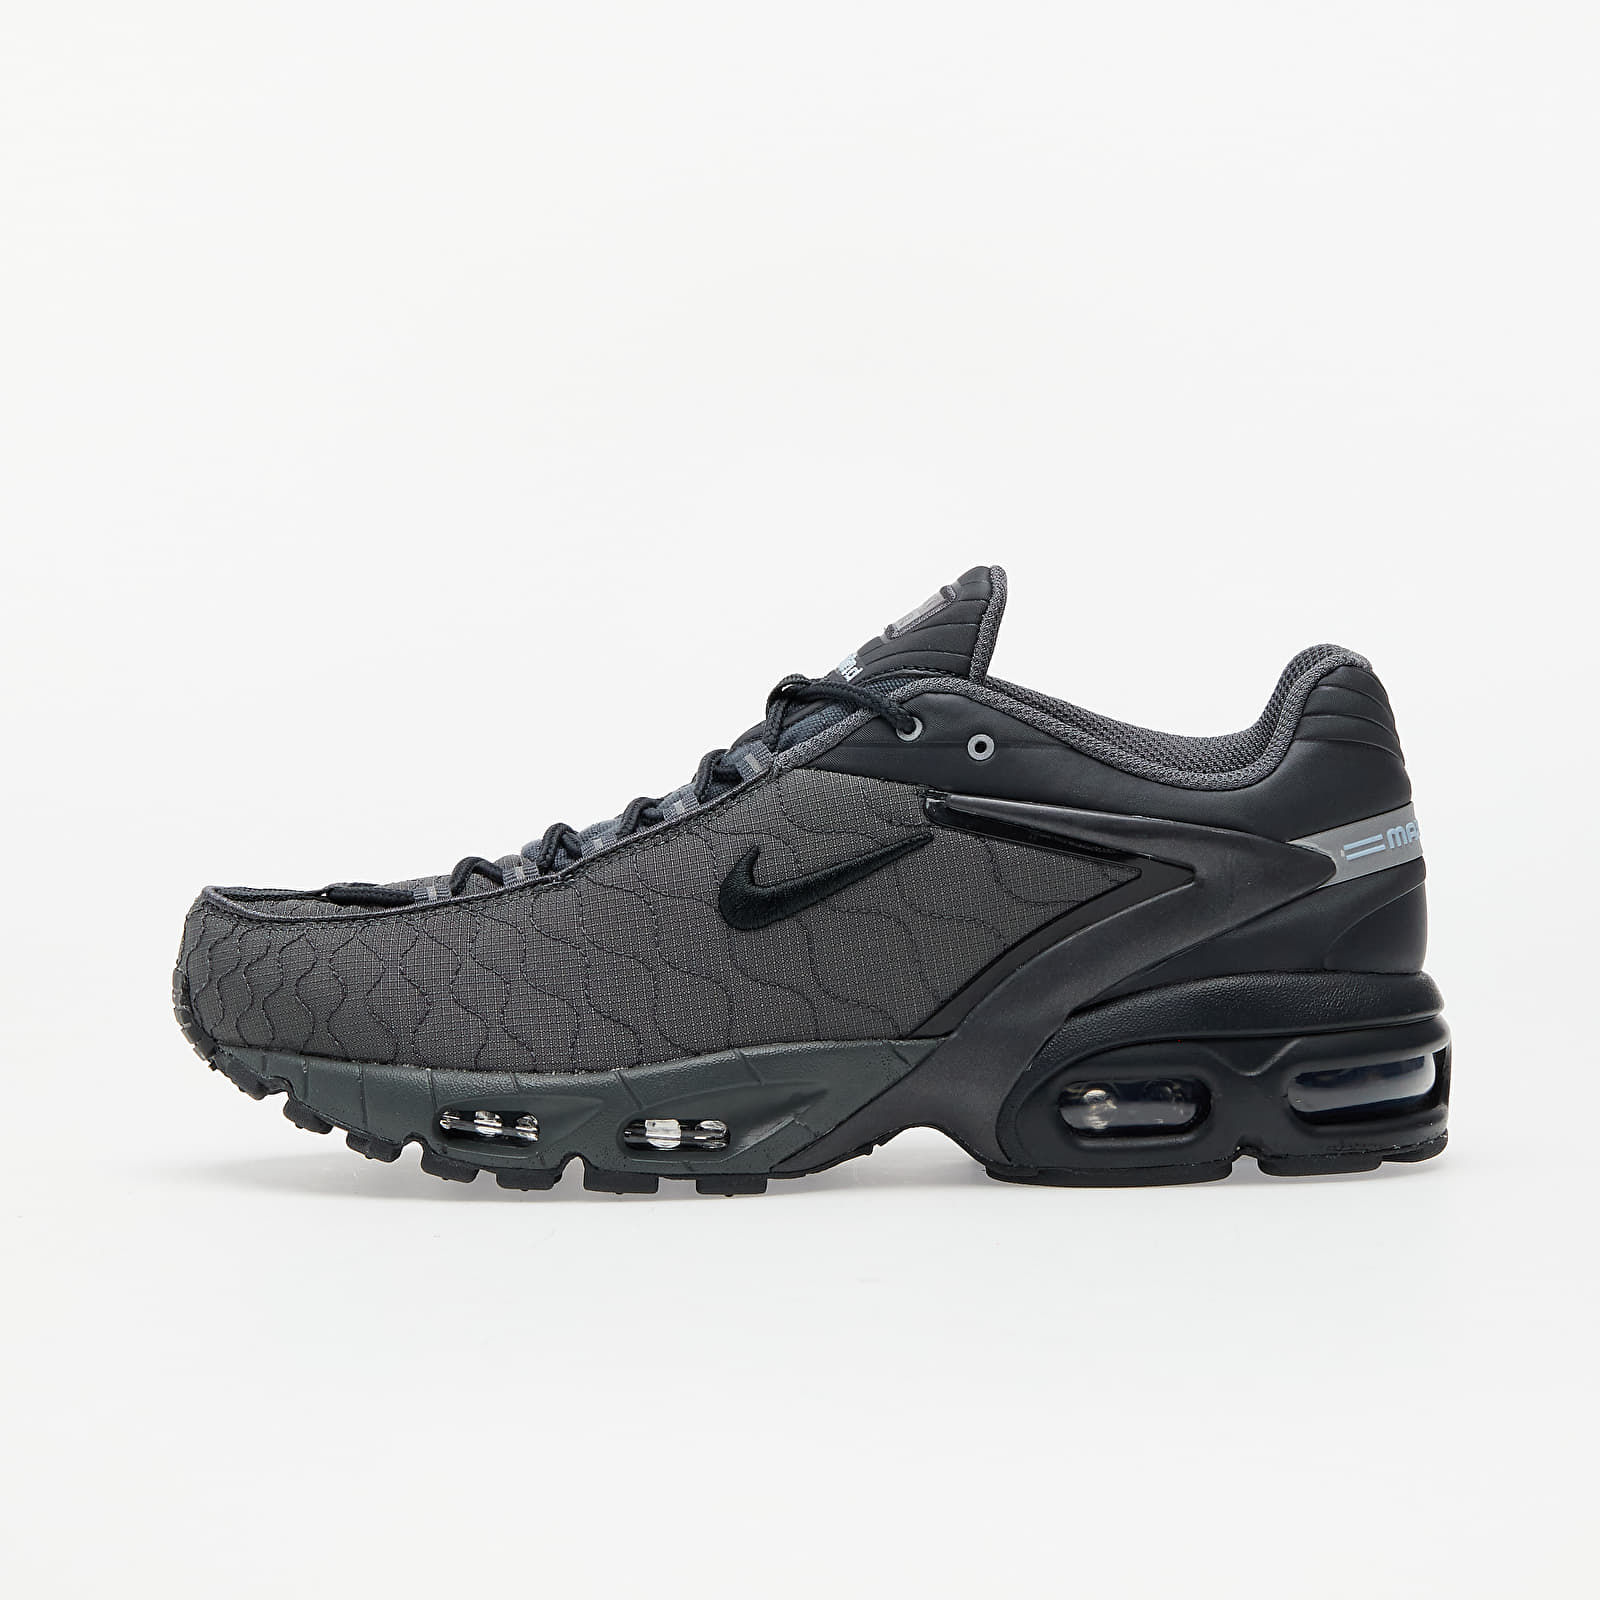 Nike Air Max Tailwind V SP Iron Grey/ Off Noir-Lt Armory Blue CQ8713-001